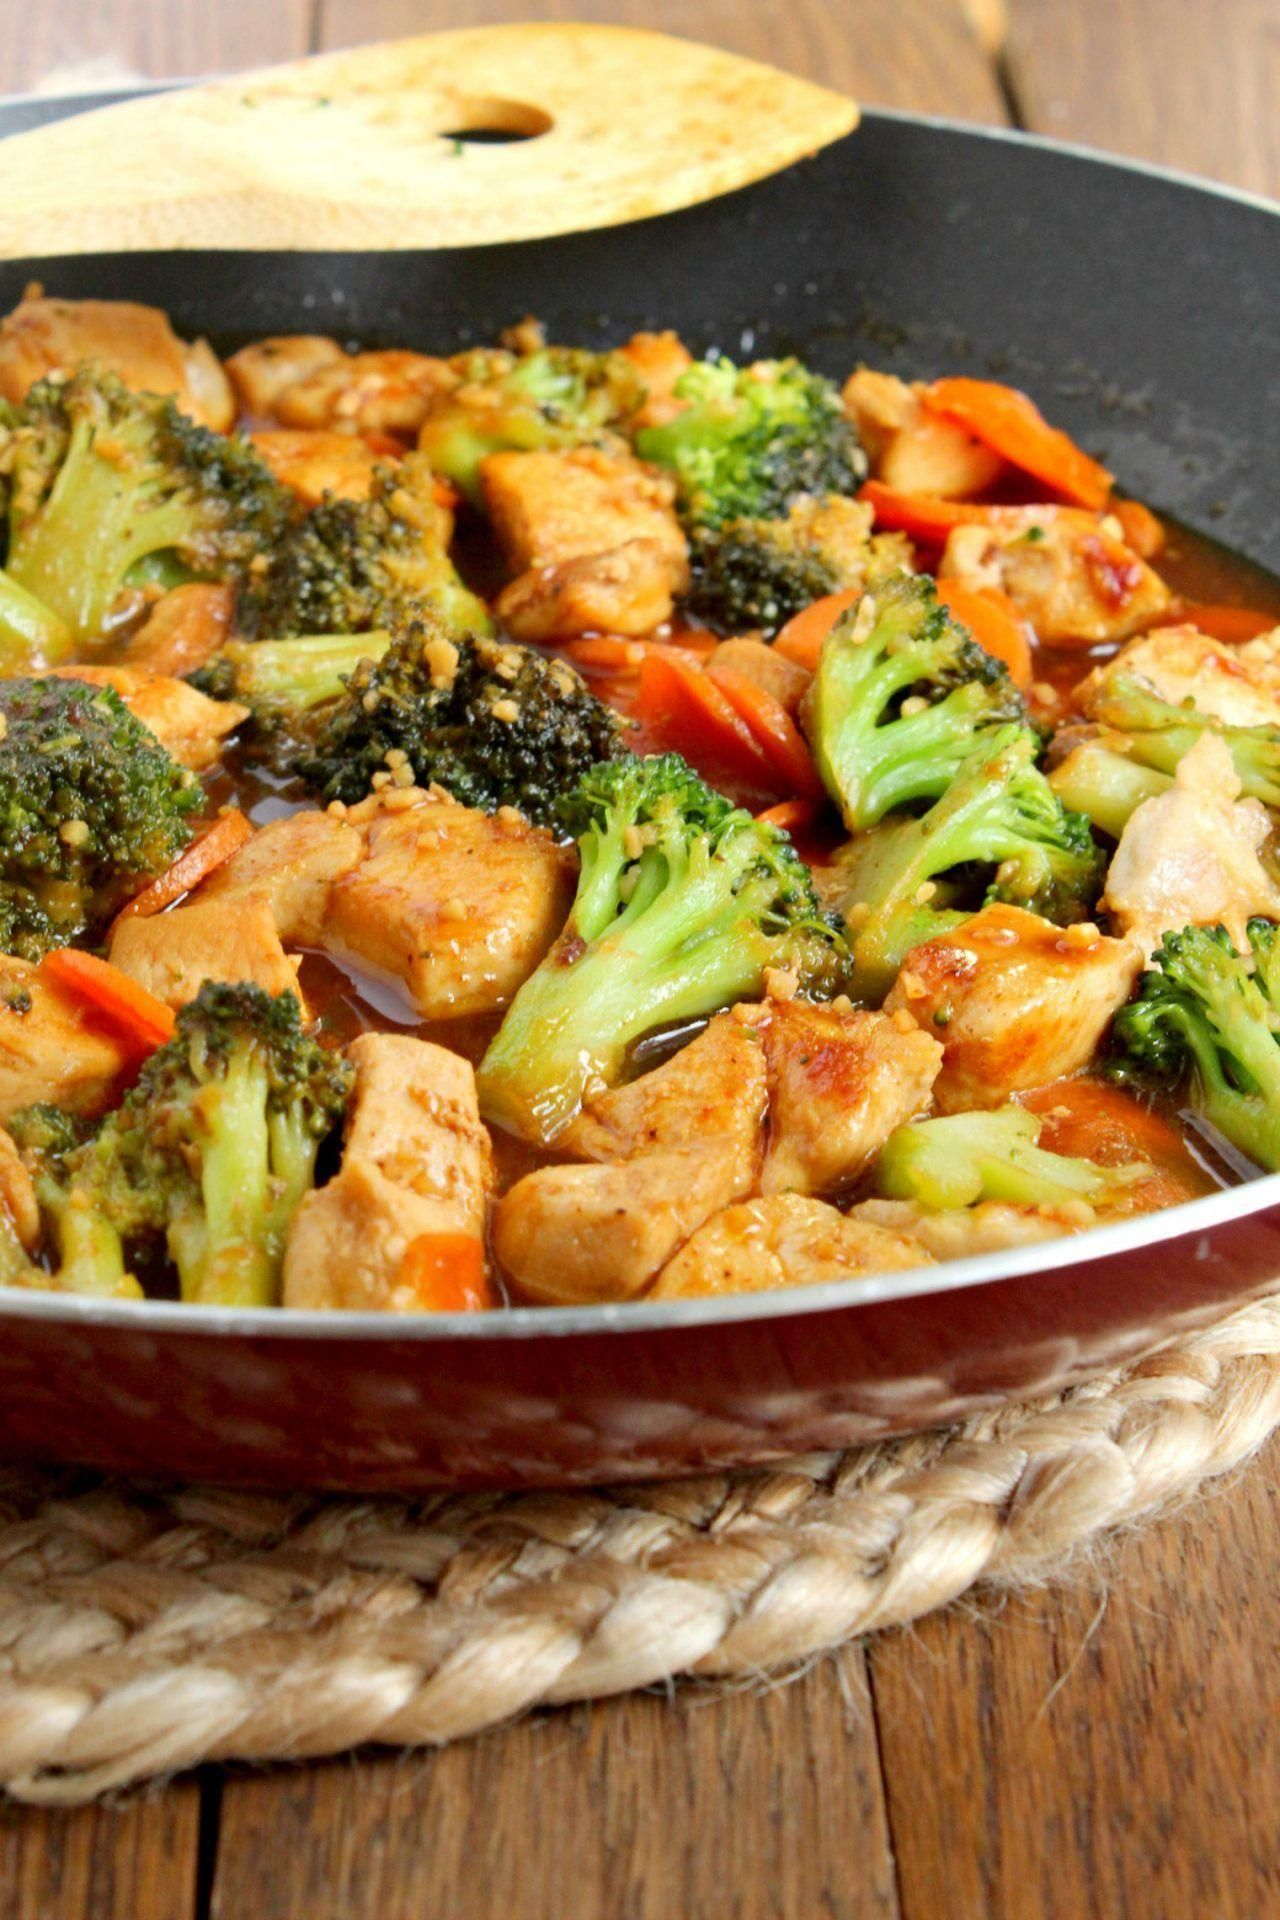 Honey Garlic Chicken Stir Fry with Broccoli & Carrots  - Let's talk about food... -